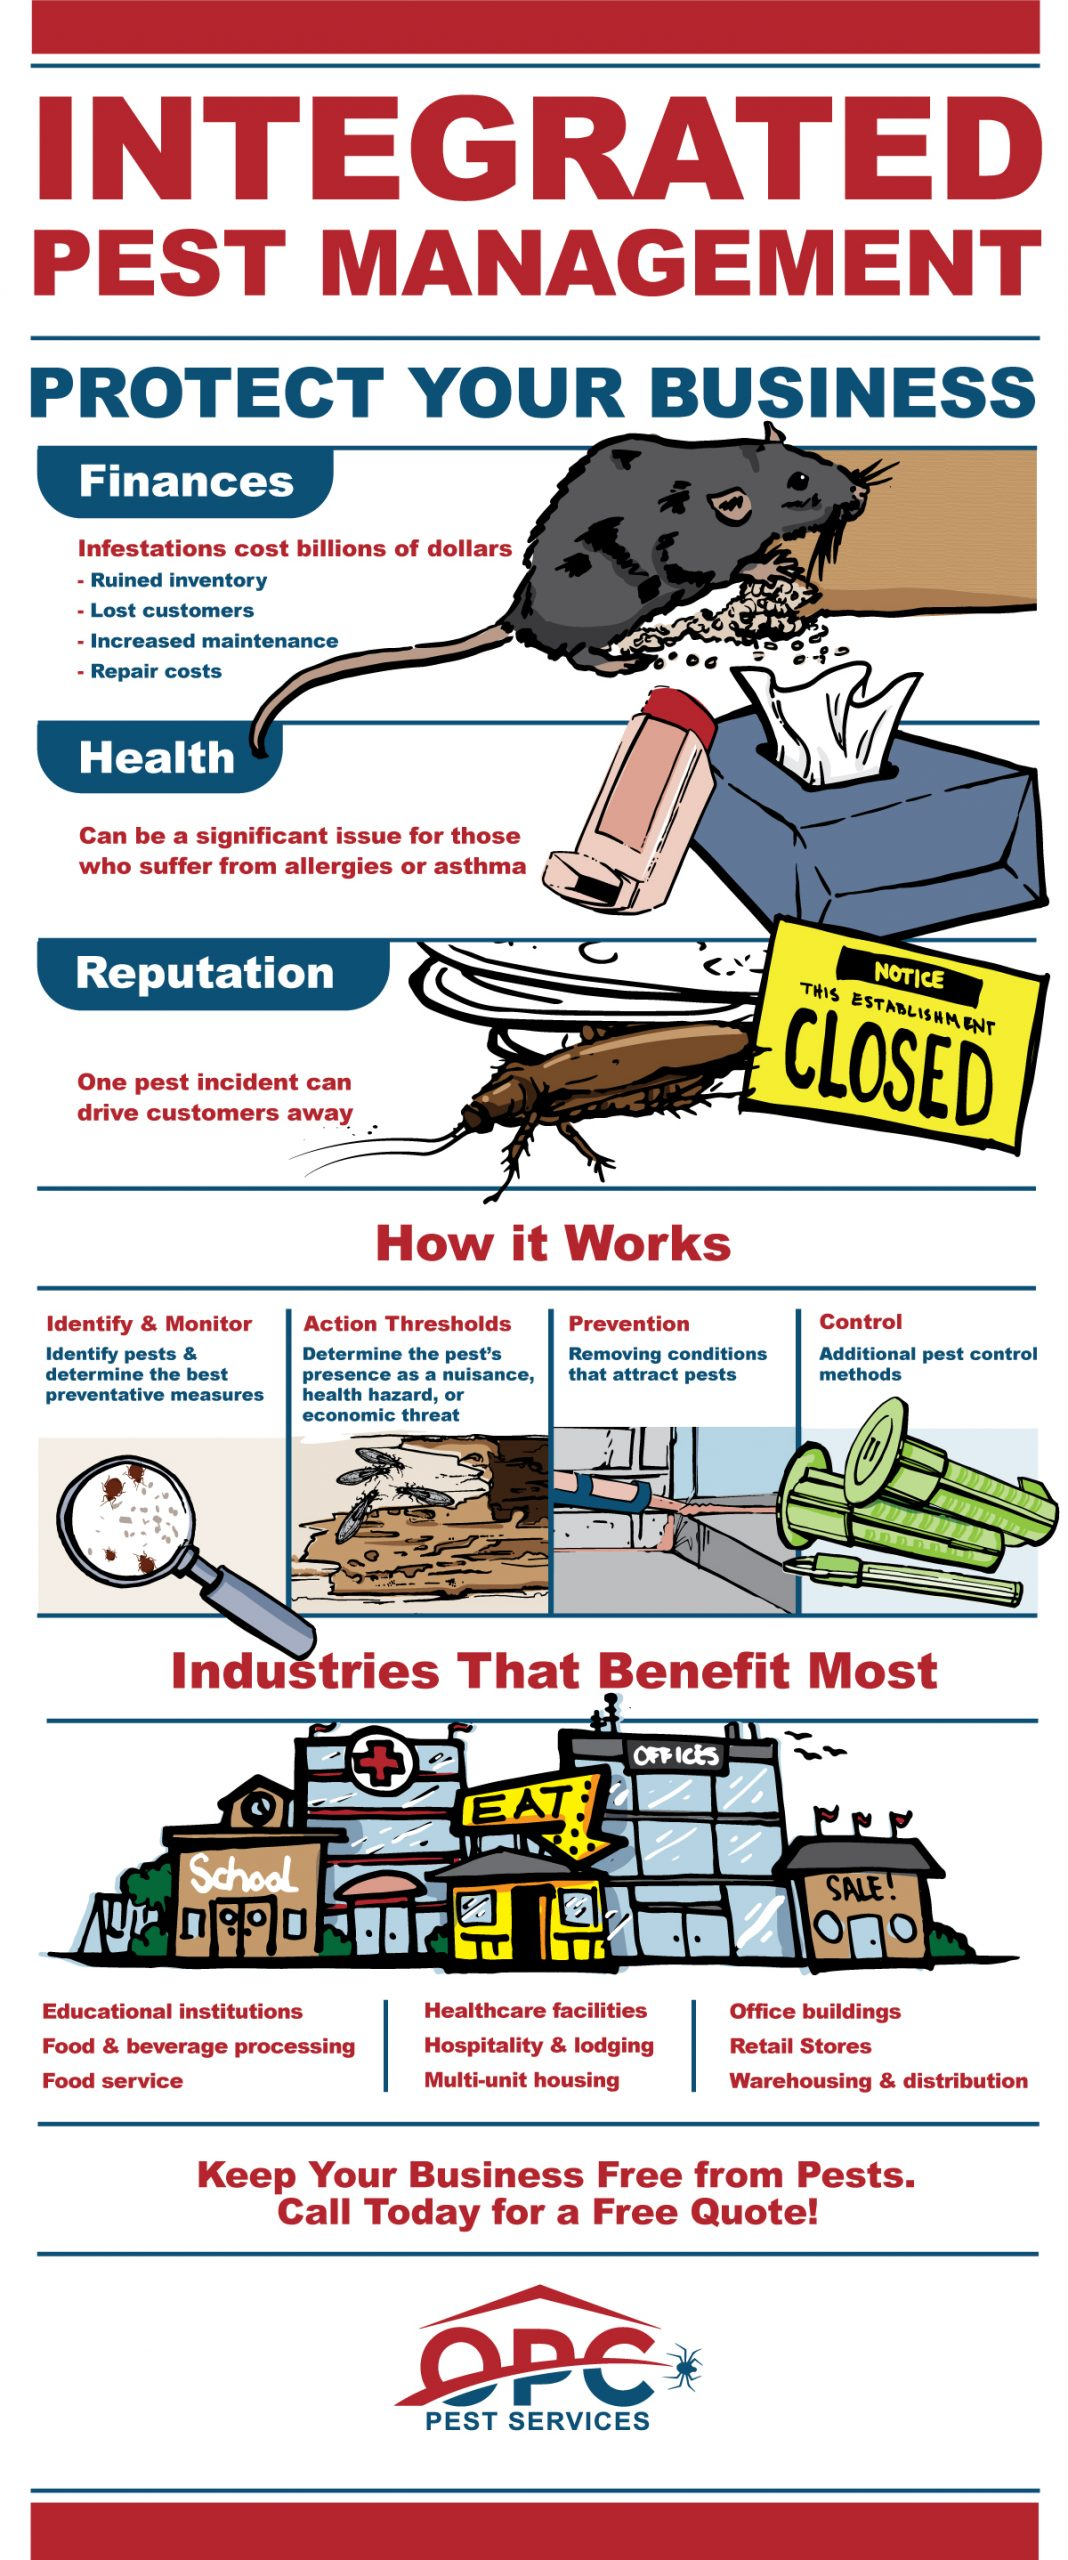 OPC Pest Services - Integrated Pest Management Infographic